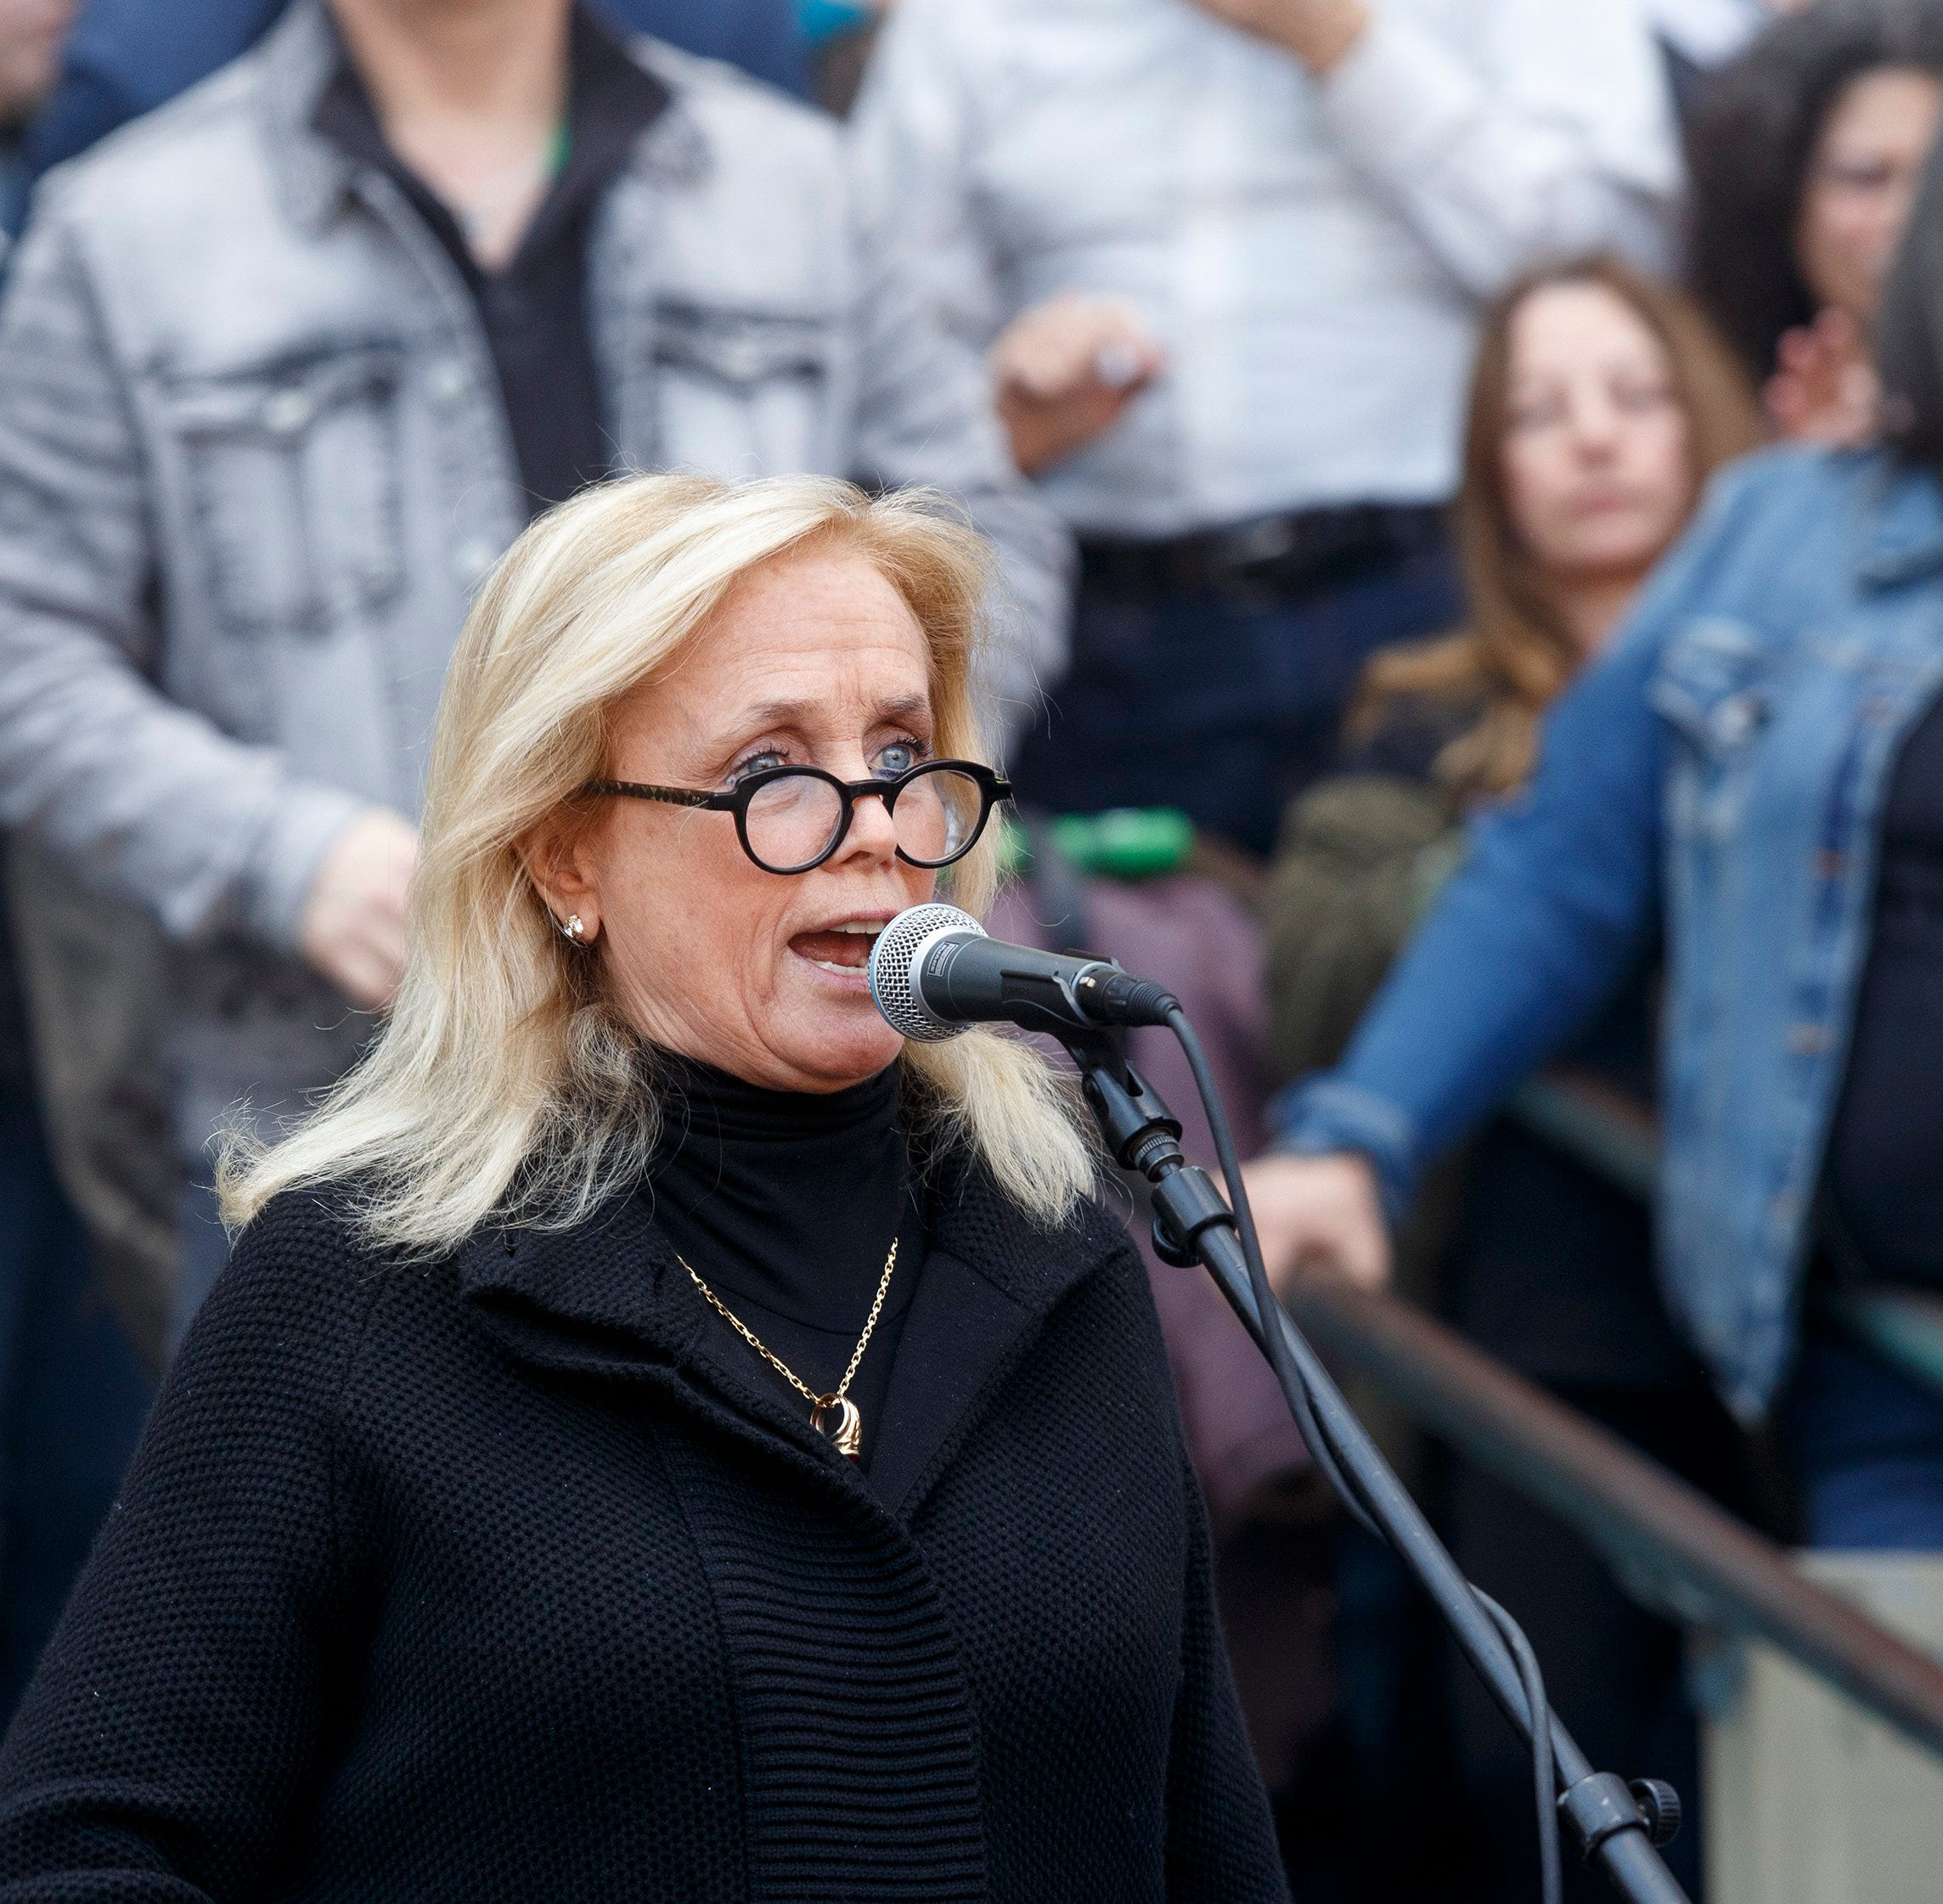 Debbie Dingell speaks at Hash Bash 2019, first since recreational marijuana legalized